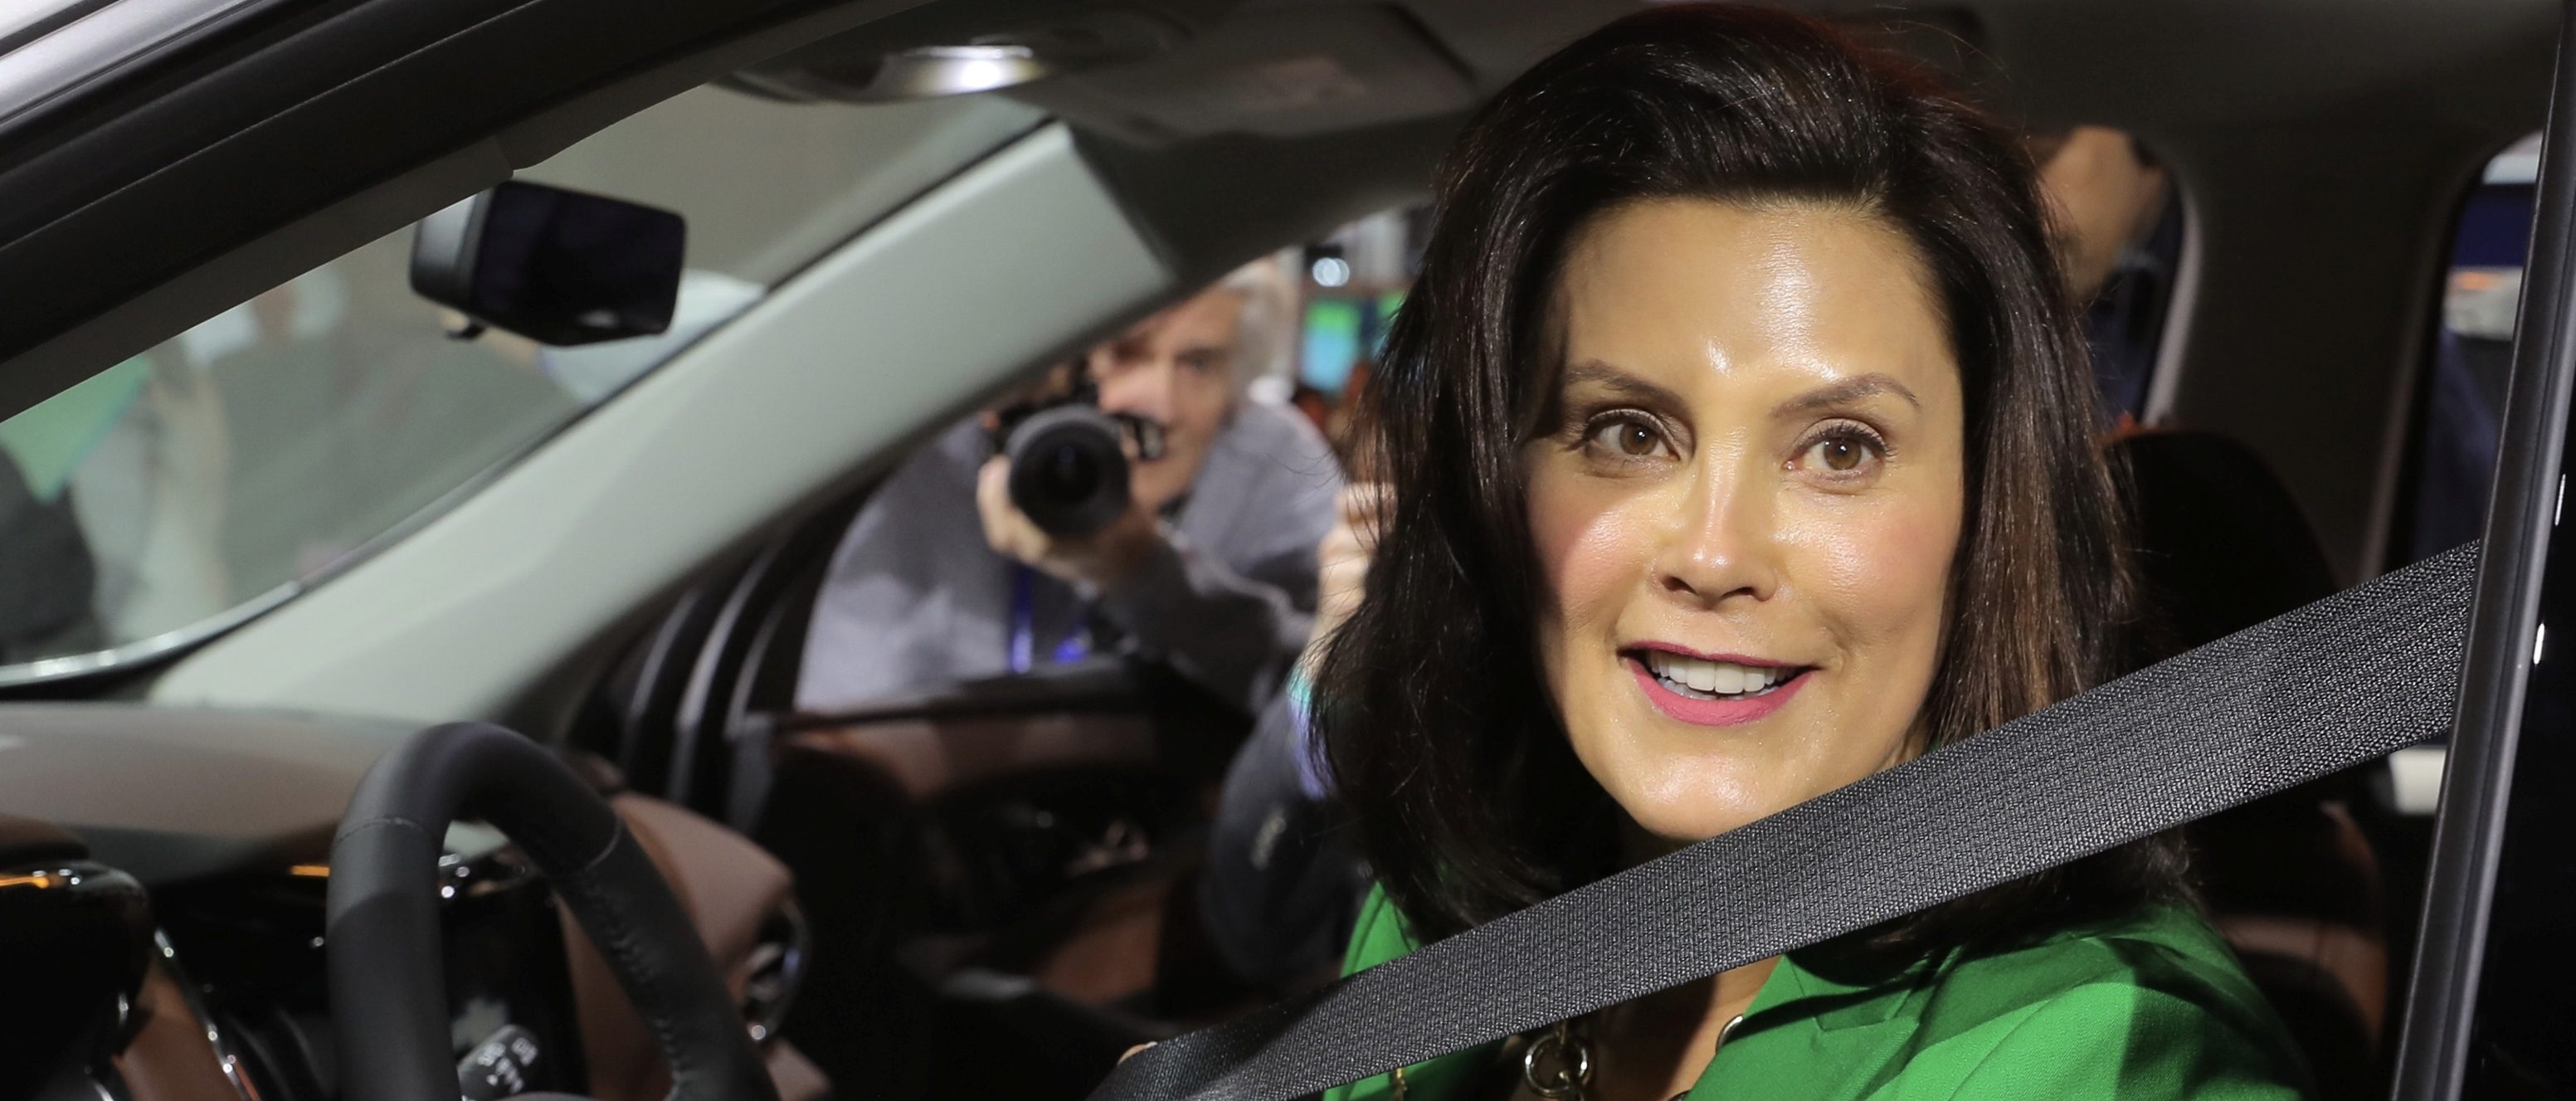 FILE PHOTO: Michigan Governor Gretchen Whitmer sits in a 2019 Chevrolet Traverse, assembled in Lansing, Michigan, at the General Motors display area during the North American International Auto Show in Detroit, Michigan, U.S., Jan. 15, 2019. REUTERS/Rebecca Cook/File Photo